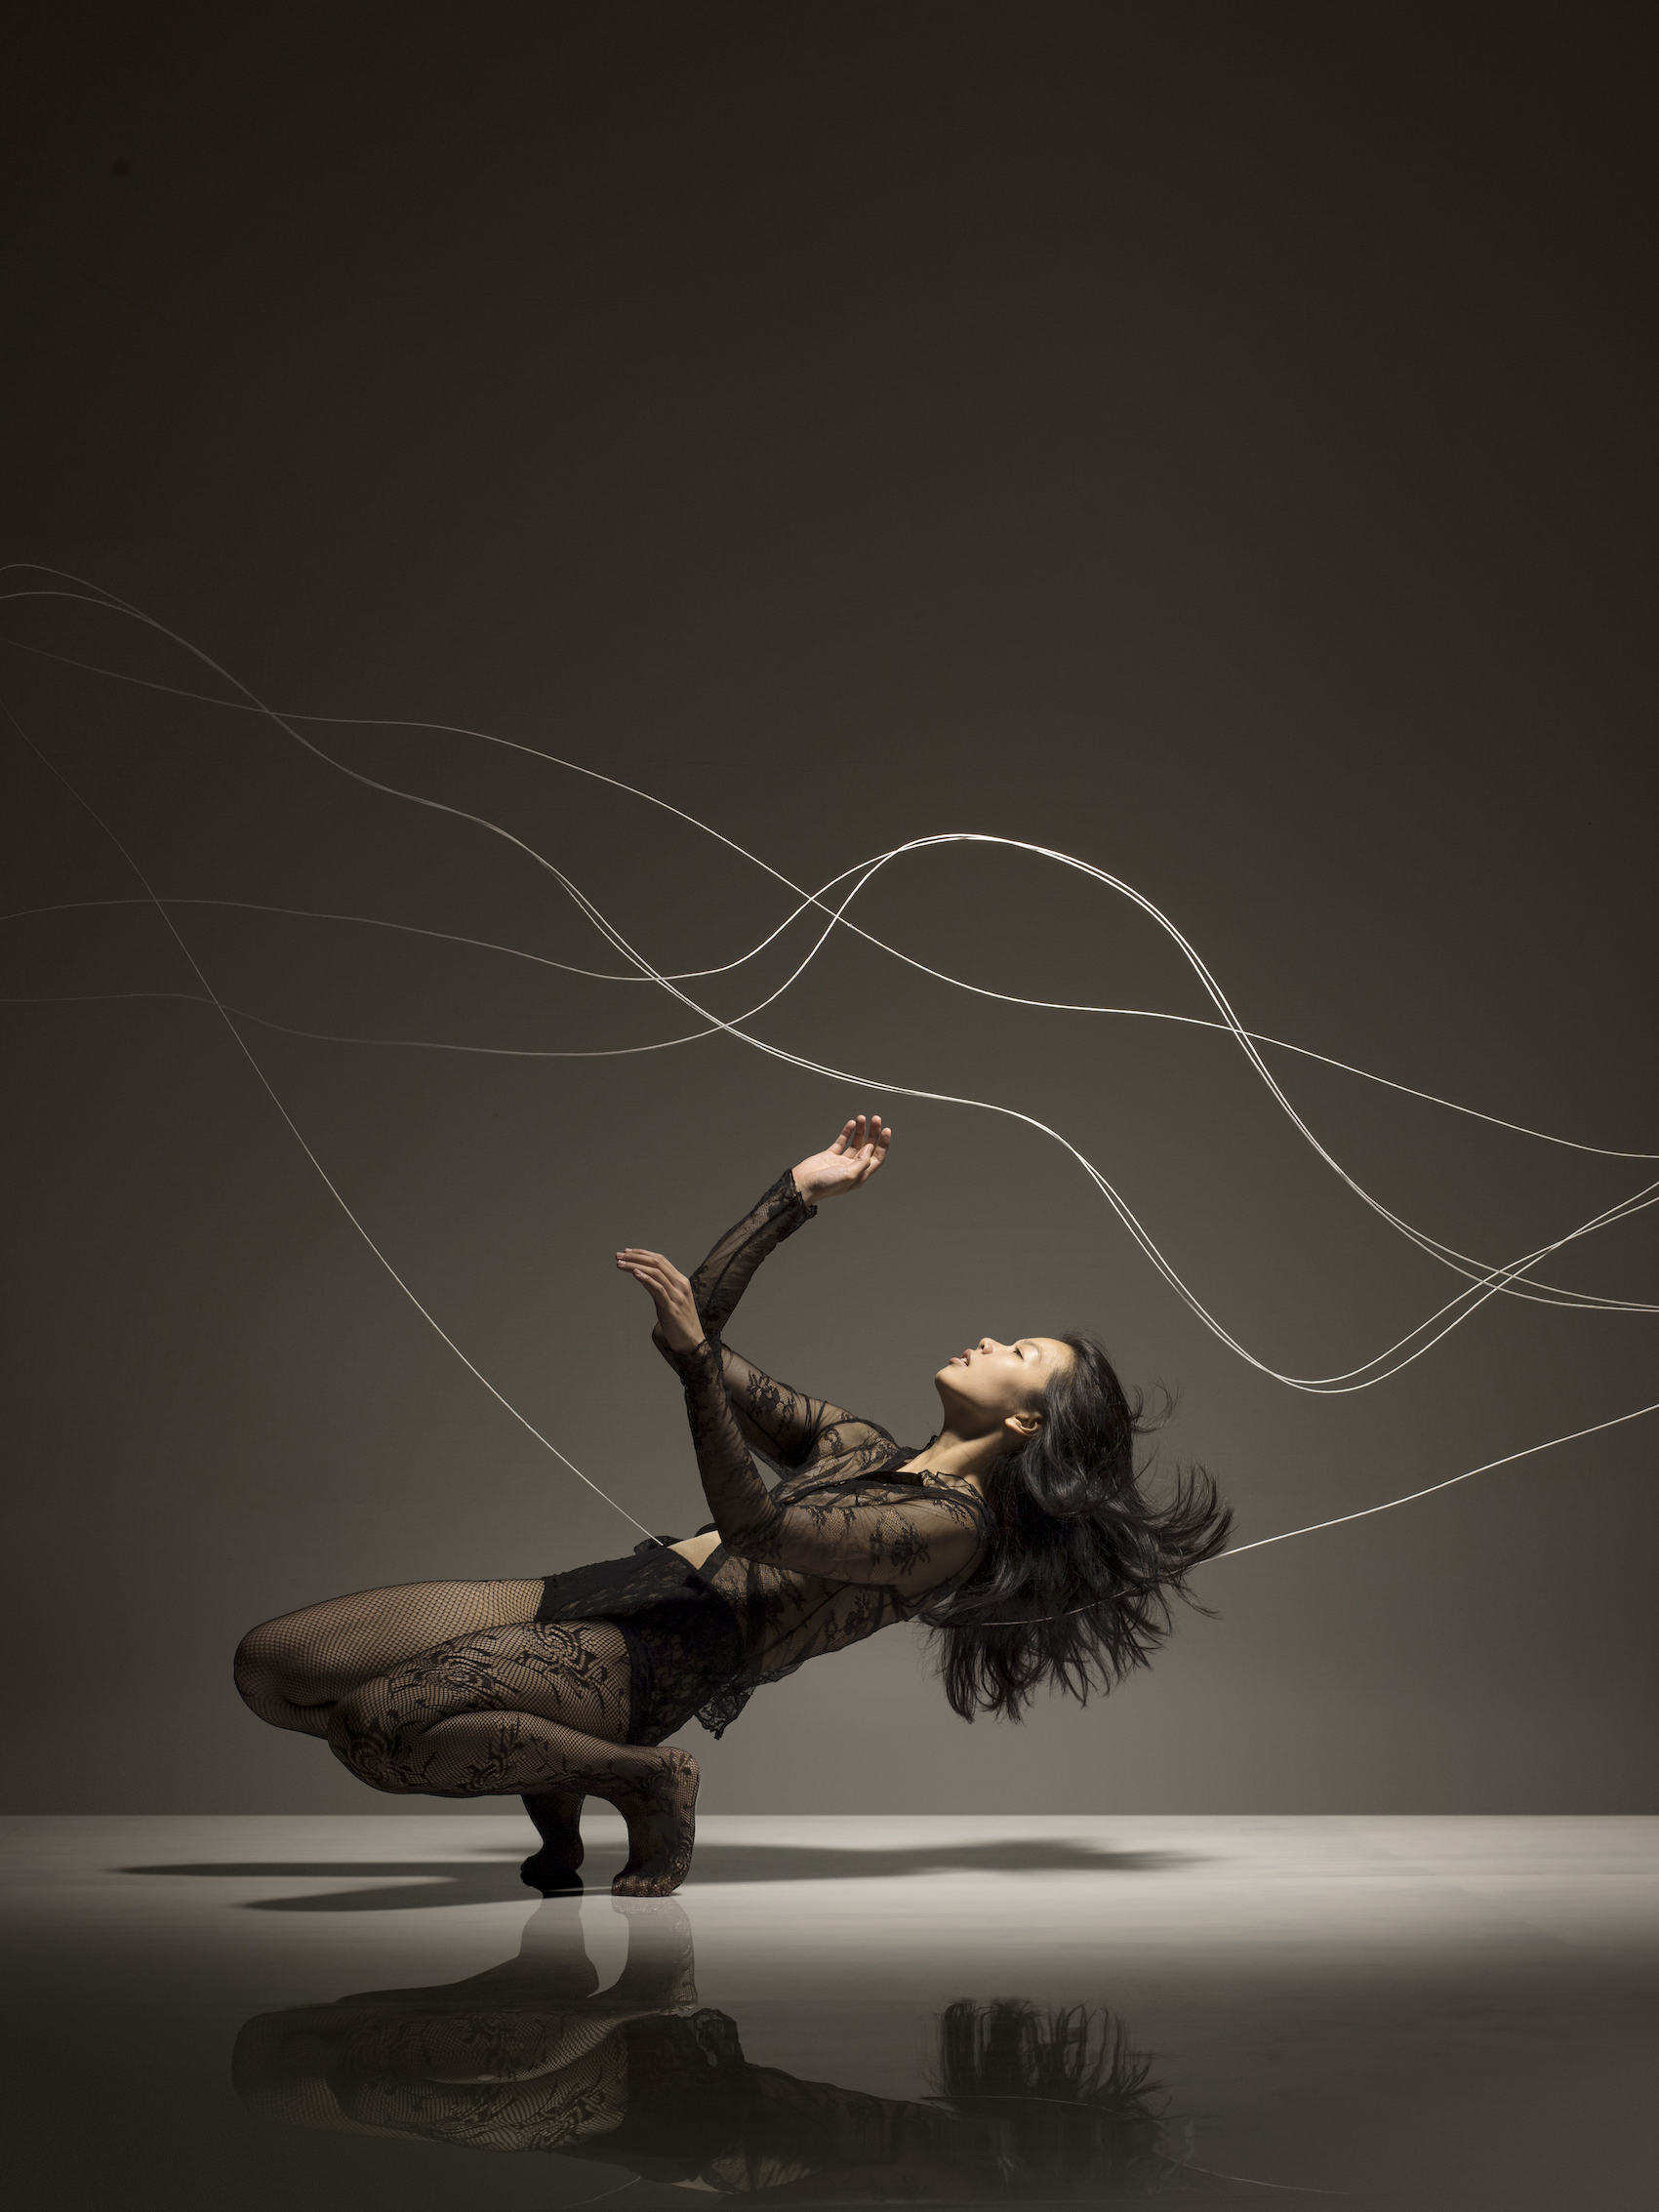 JHcopy - Lois Greenfield: Moving Still